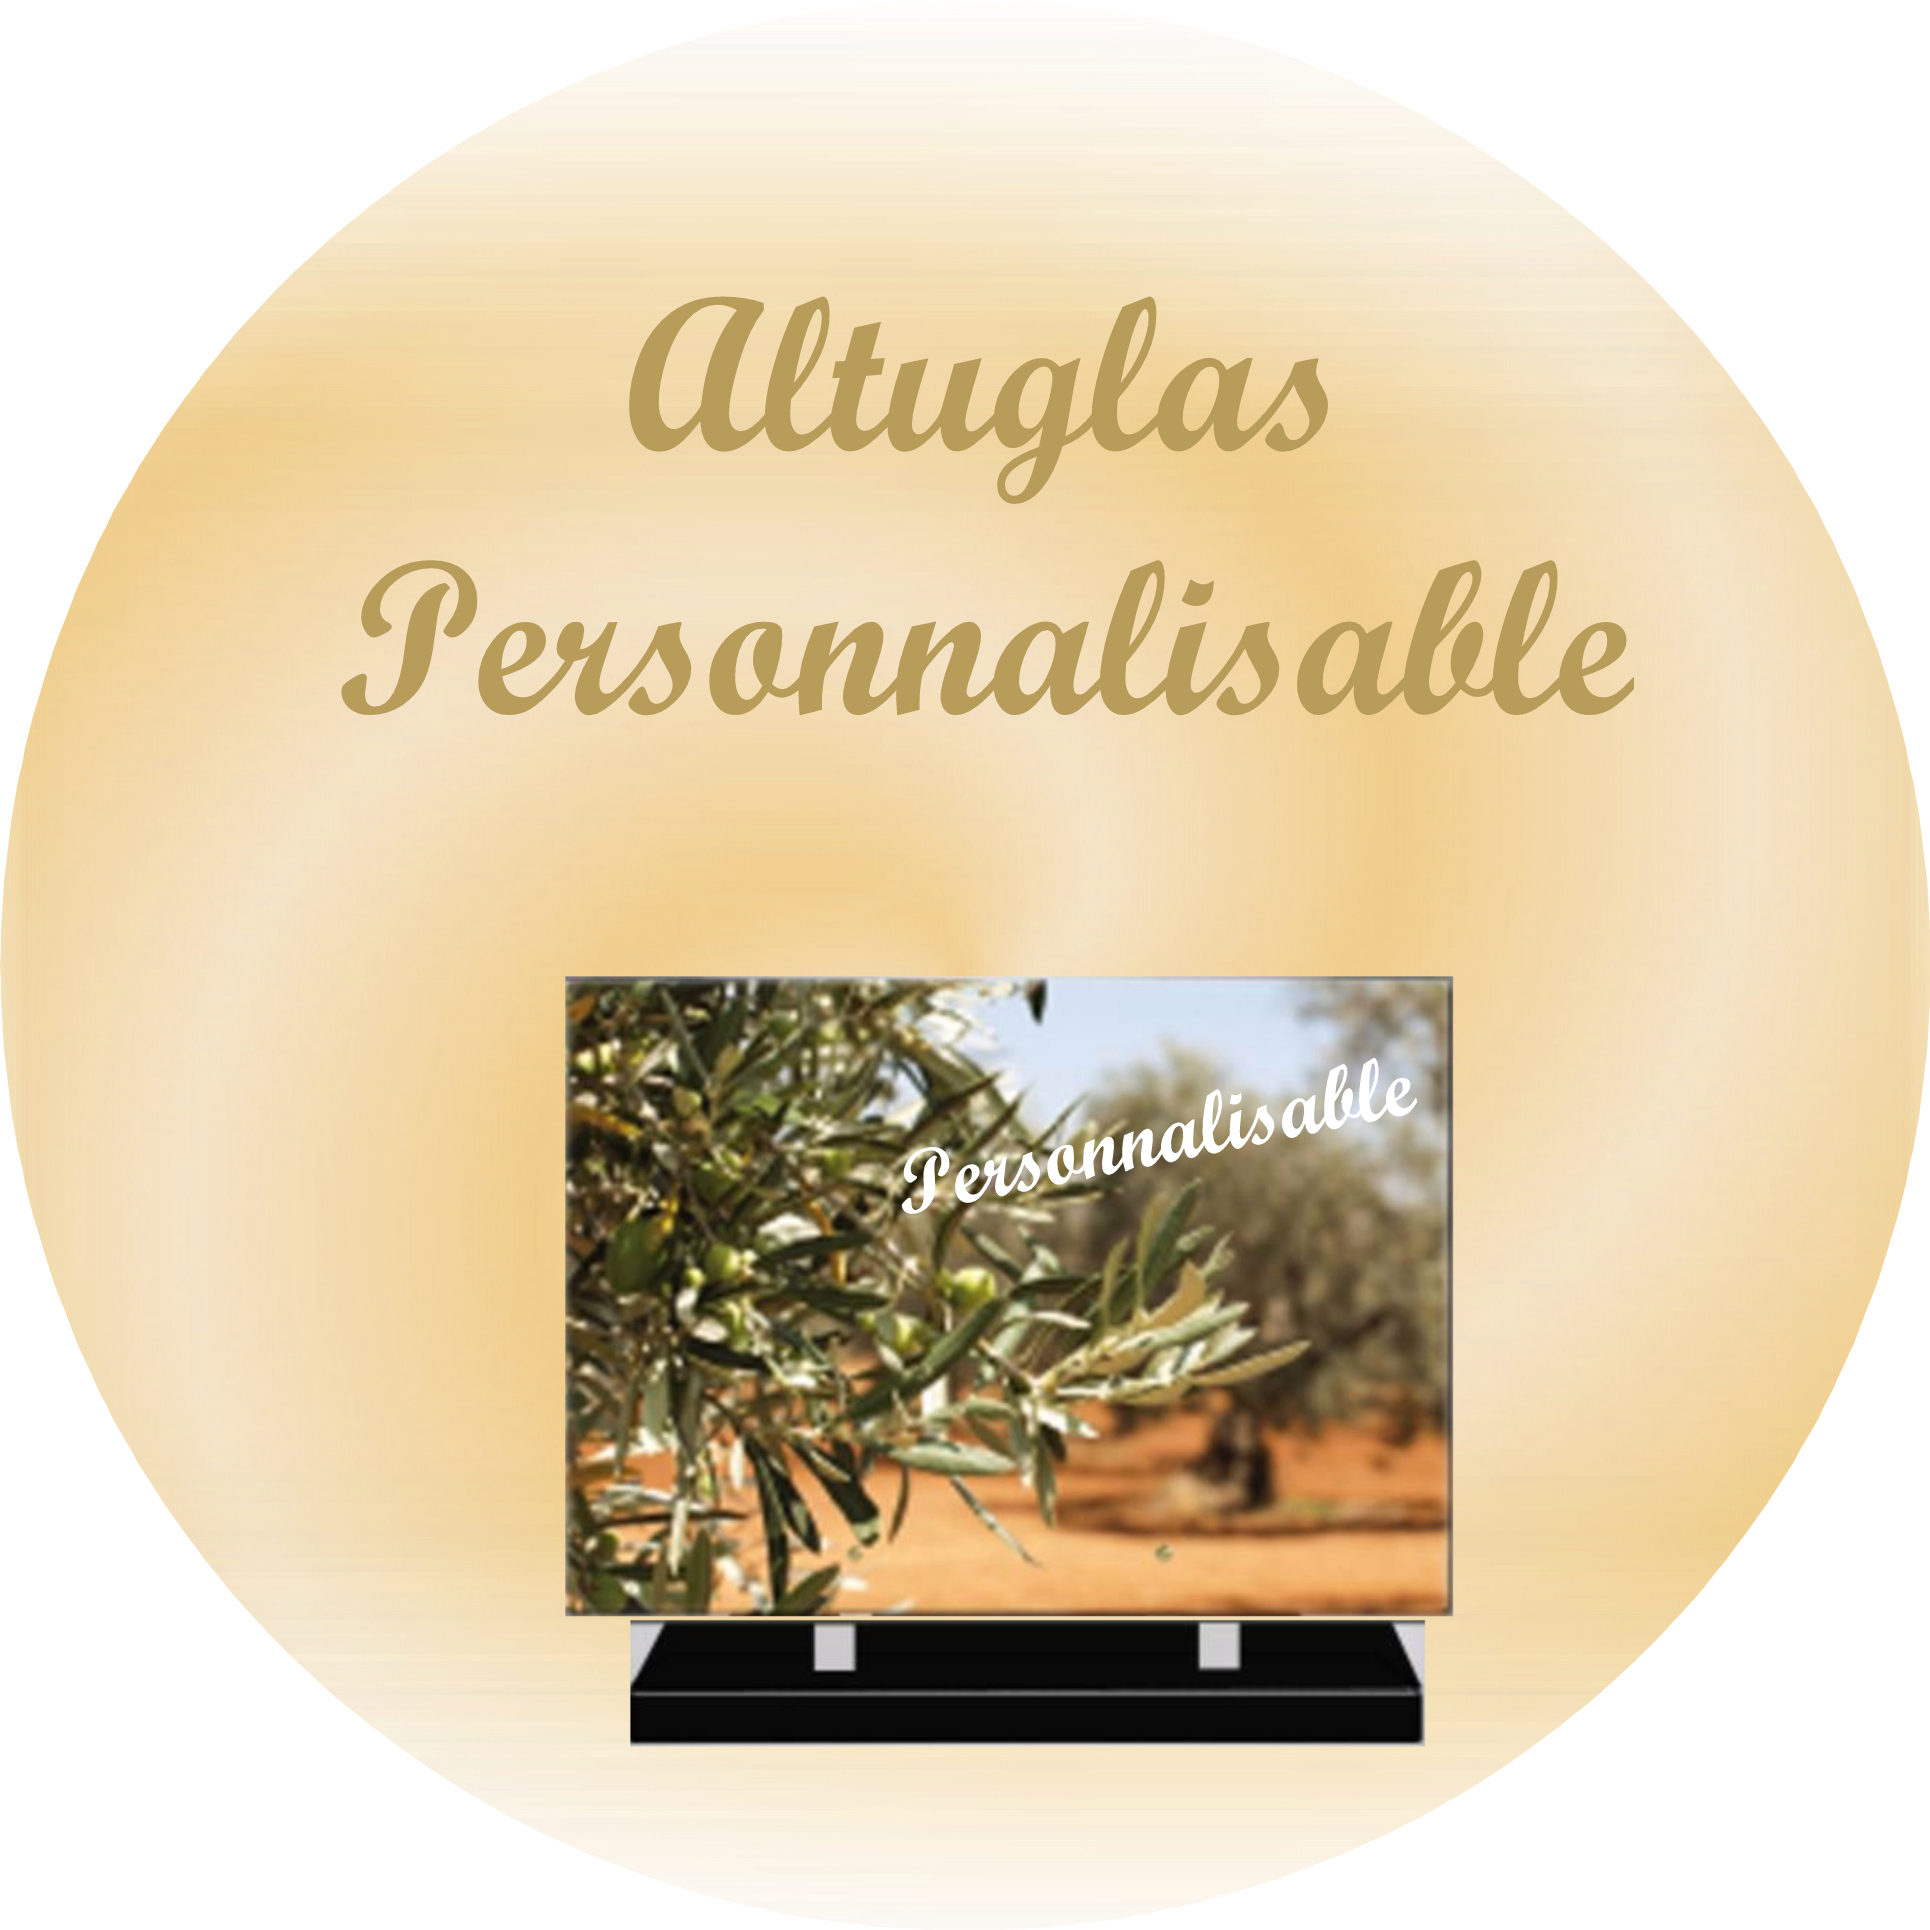 PLAQUES FUNERAIRES MODERNES PERSONNALISABLES RECTANGLE BEUVRY